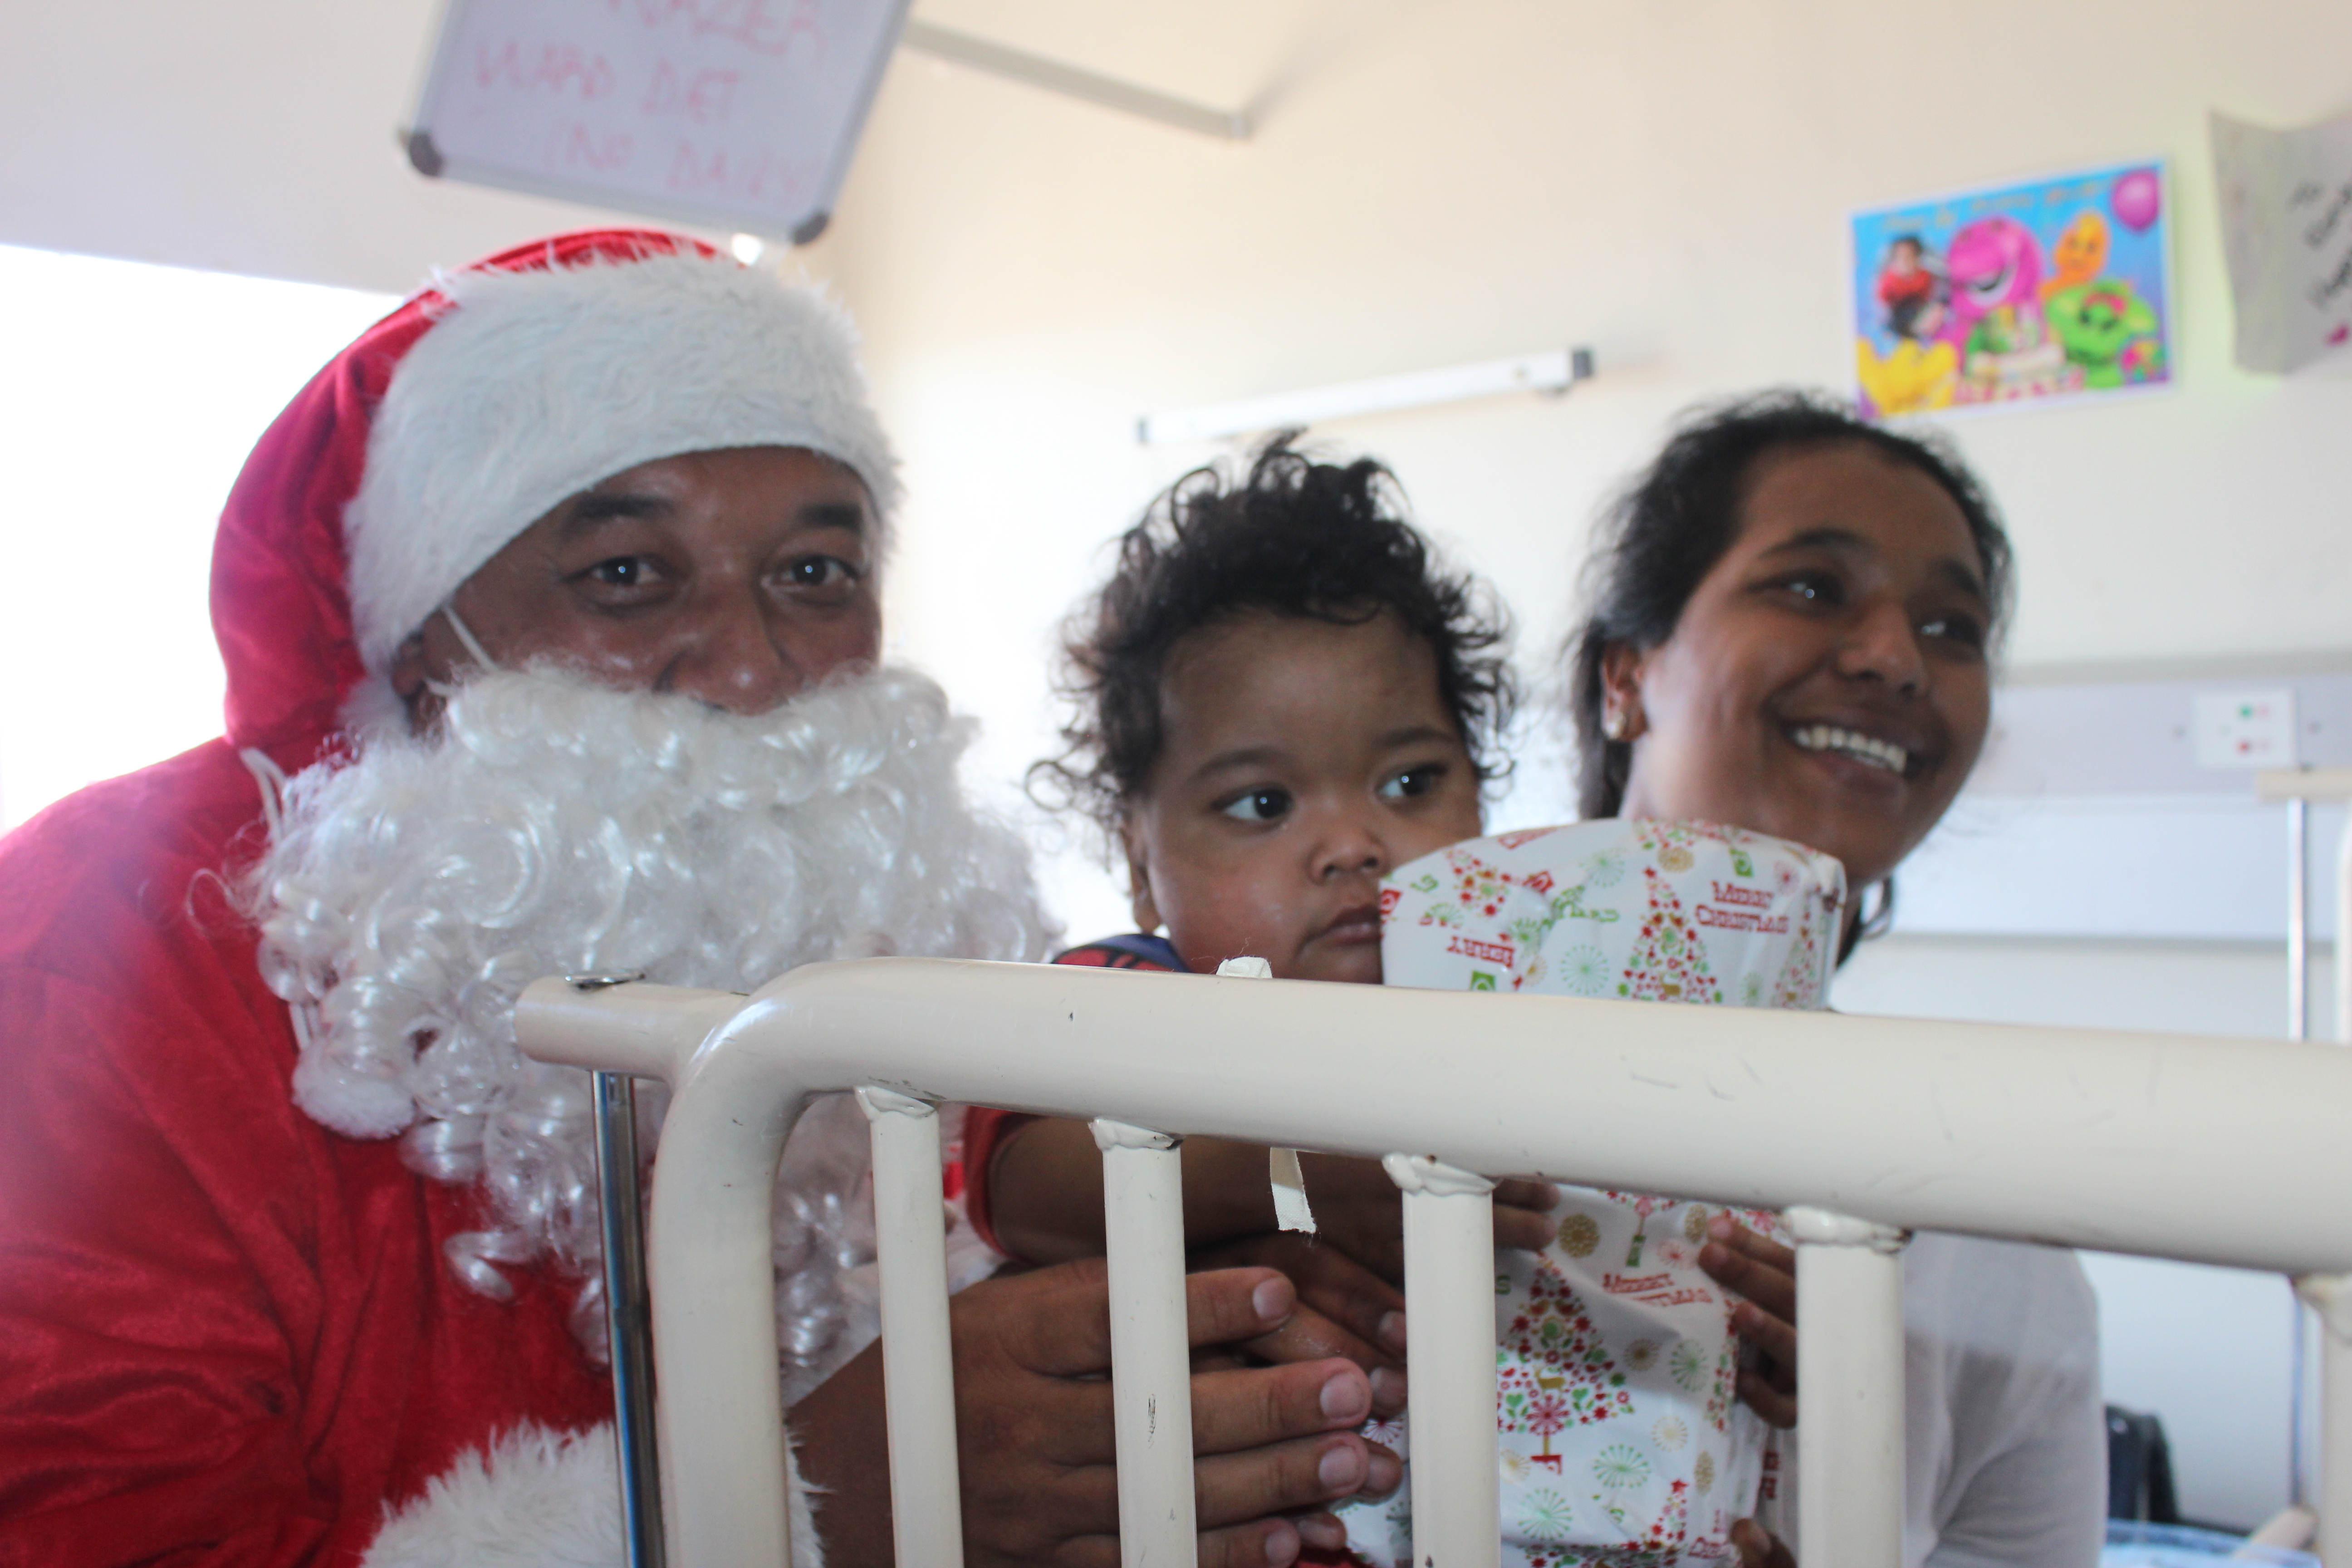 Father Christmas handed out gifts to the patients at Red Cross War Memorial Children's Hospital